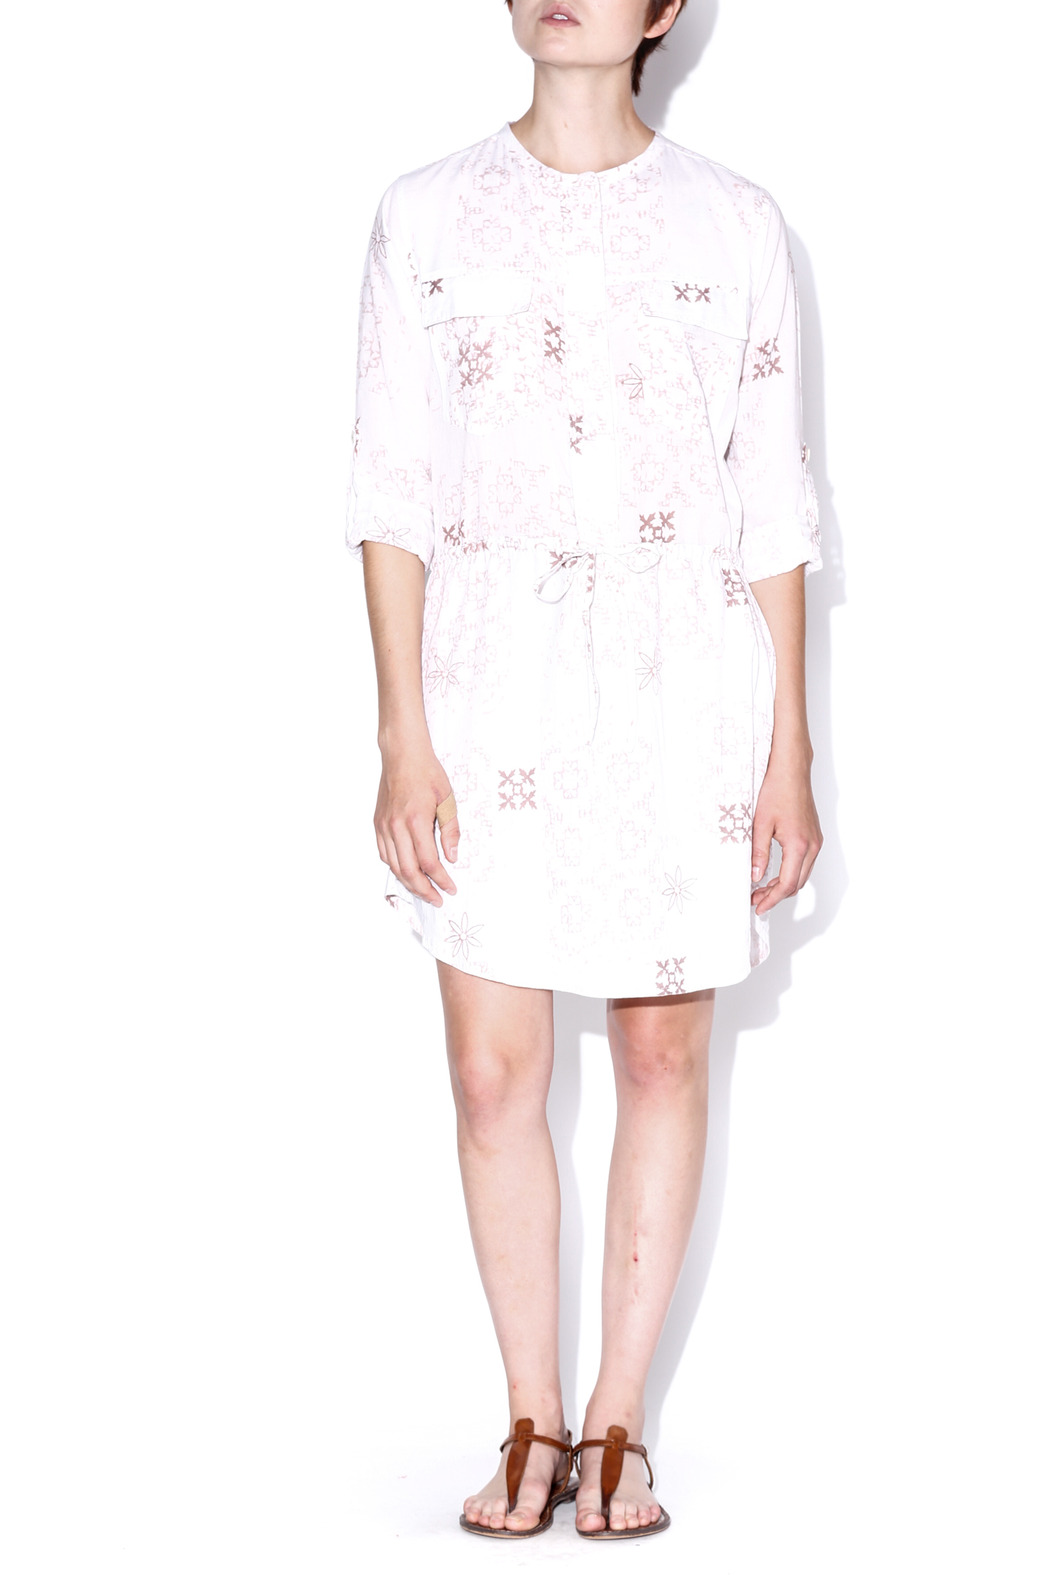 Kerry Cassill Boxer Multi Shirt Dress - Front Cropped Image